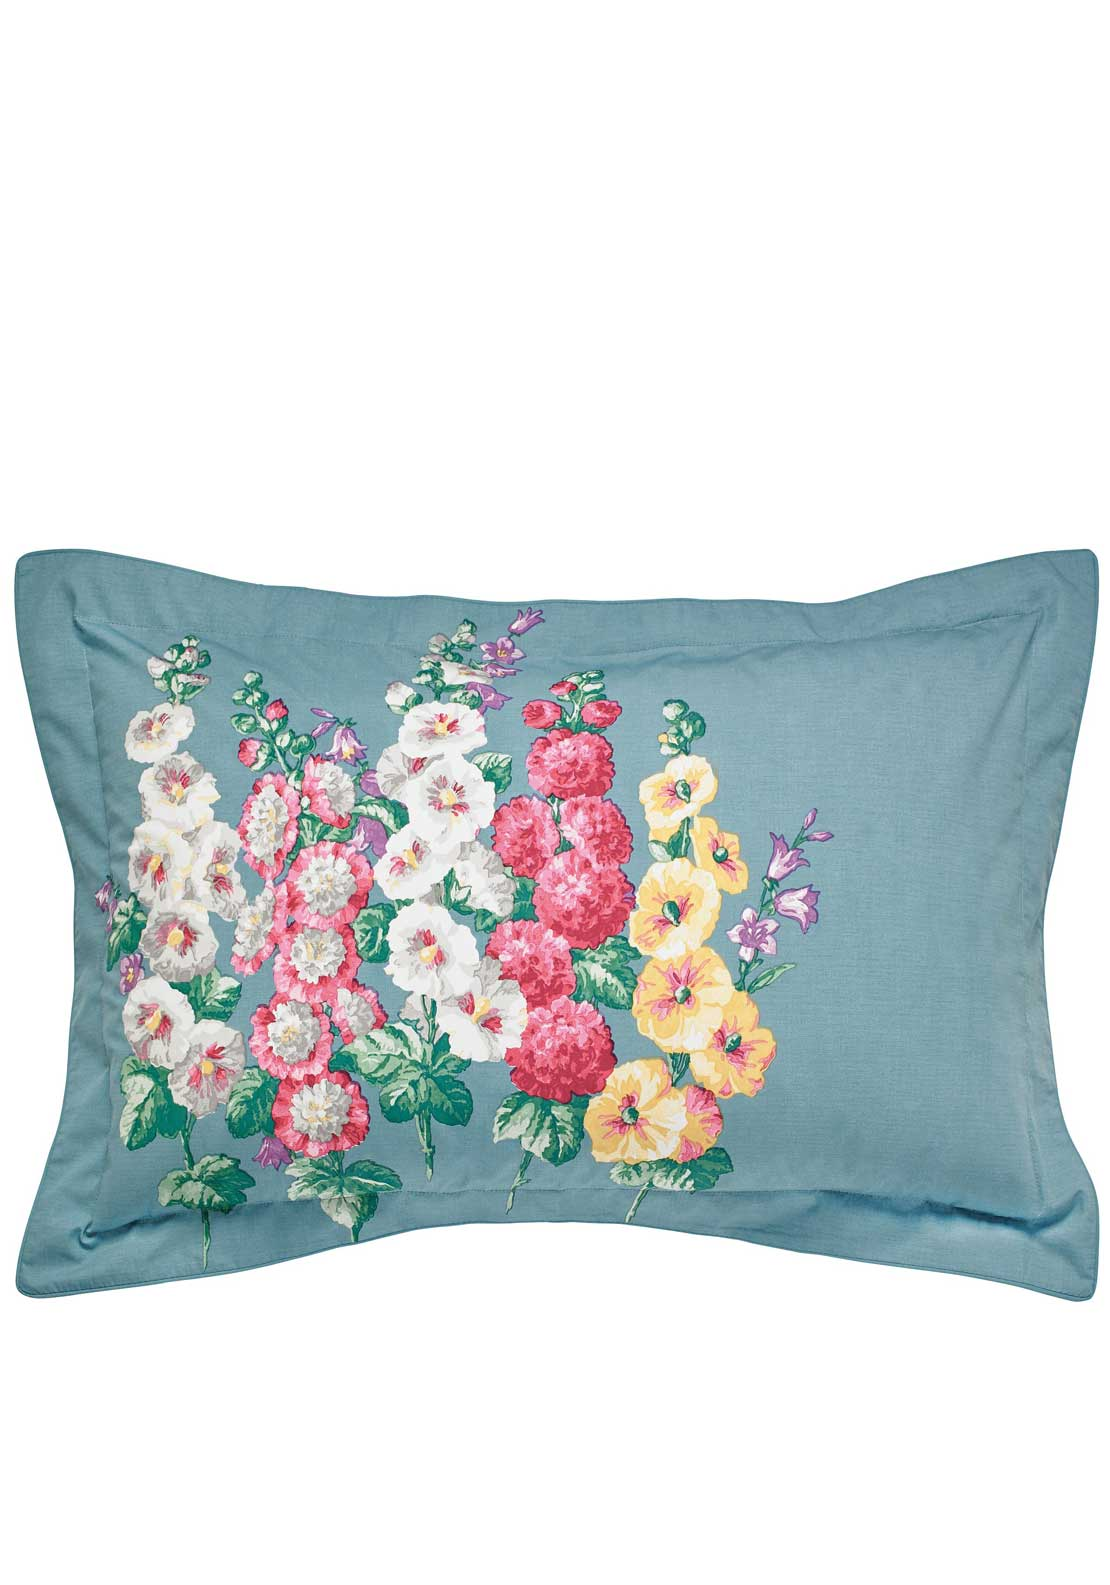 Sanderson Hollyhocks Oxford Pillowcase, Blue with Multi Floral Print